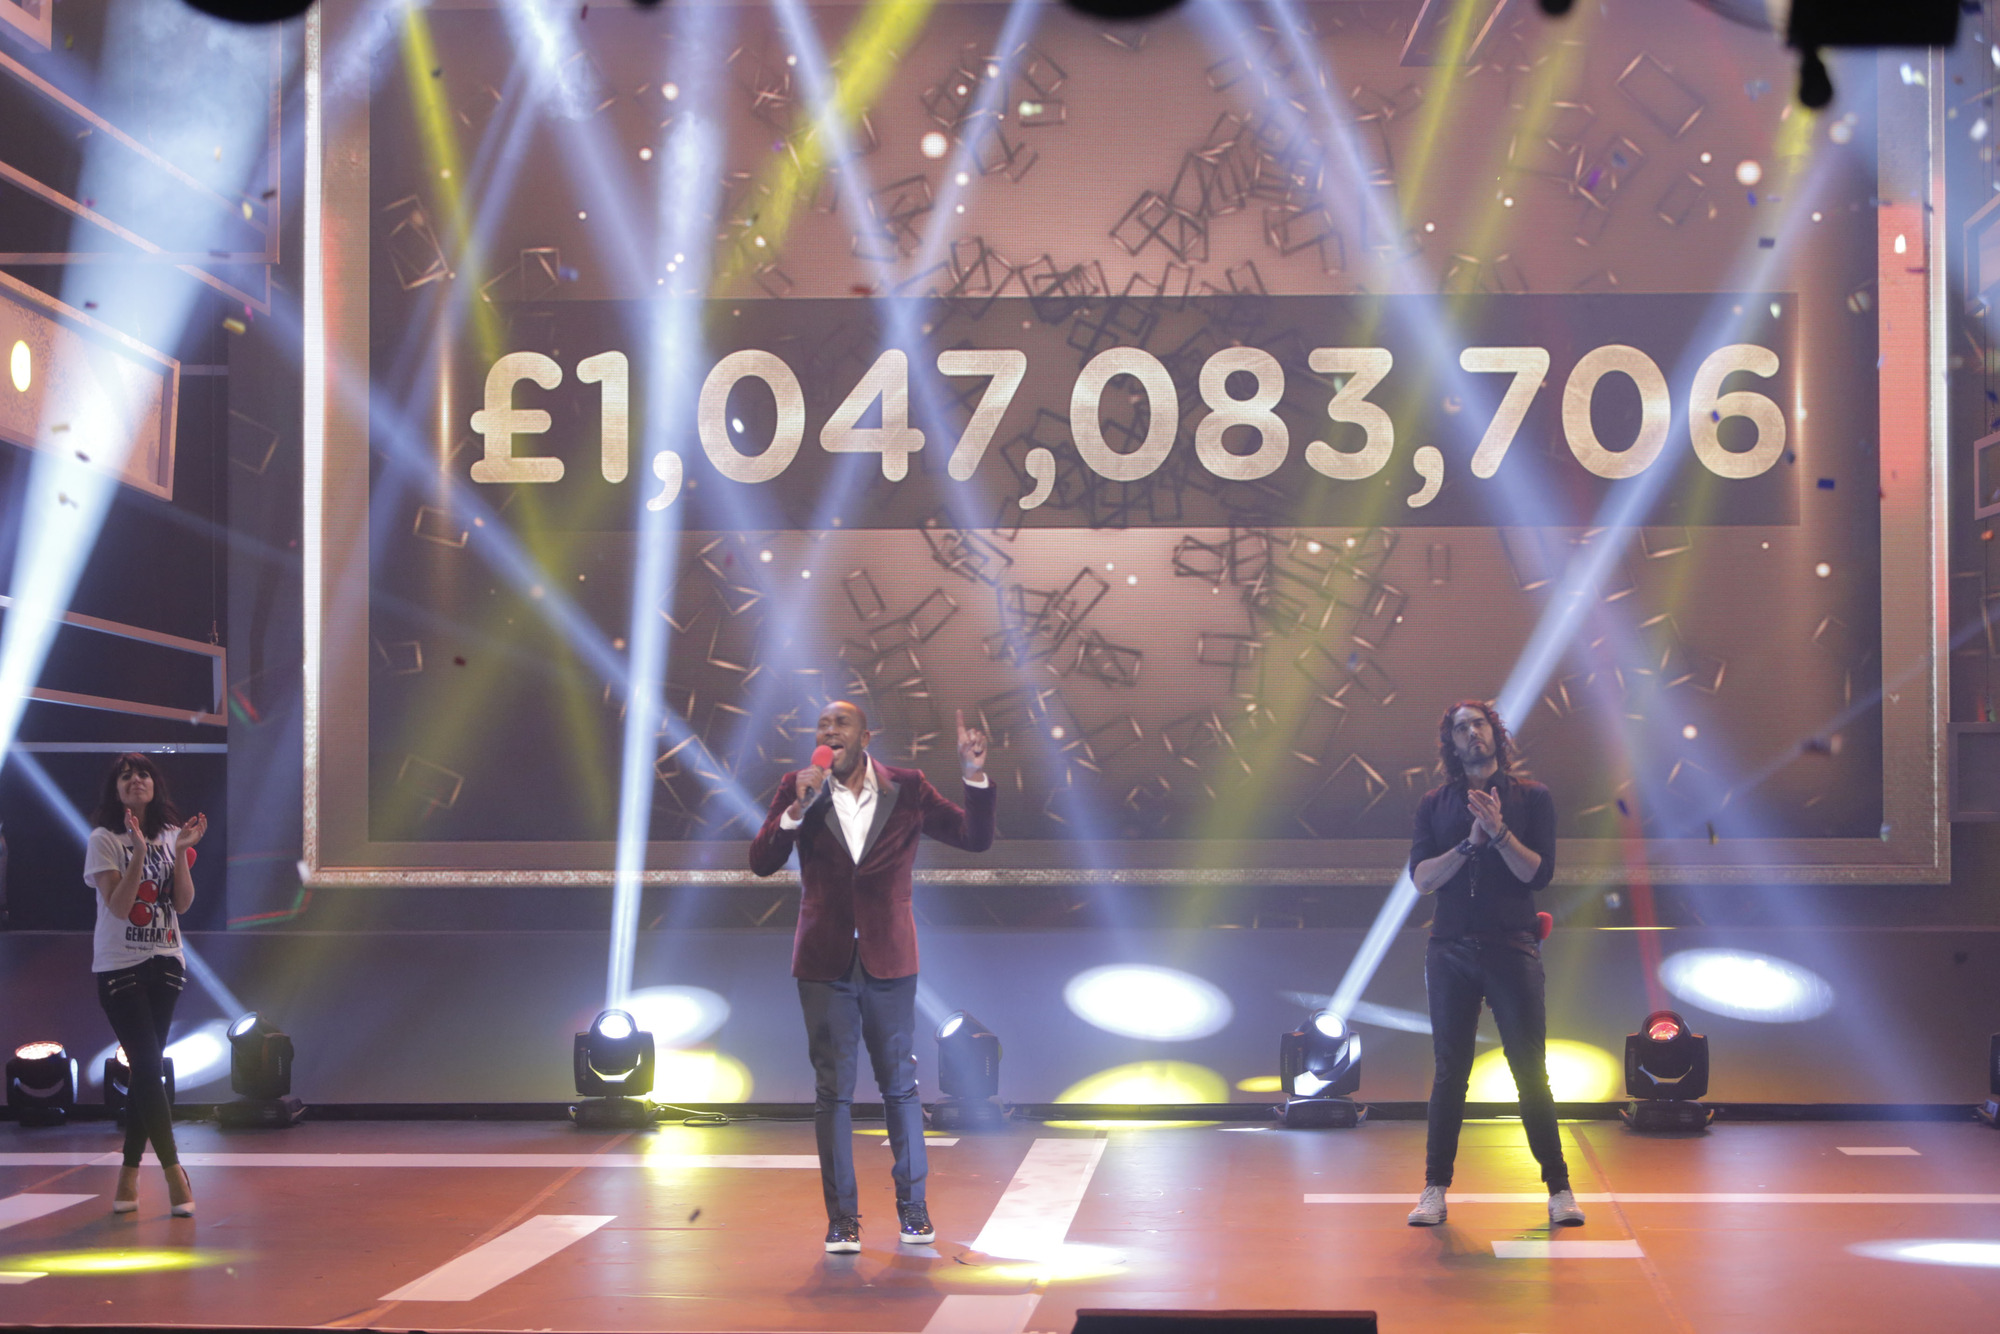 Comic Relief has broken the £1 billion barrier after 30 years of fundraising!